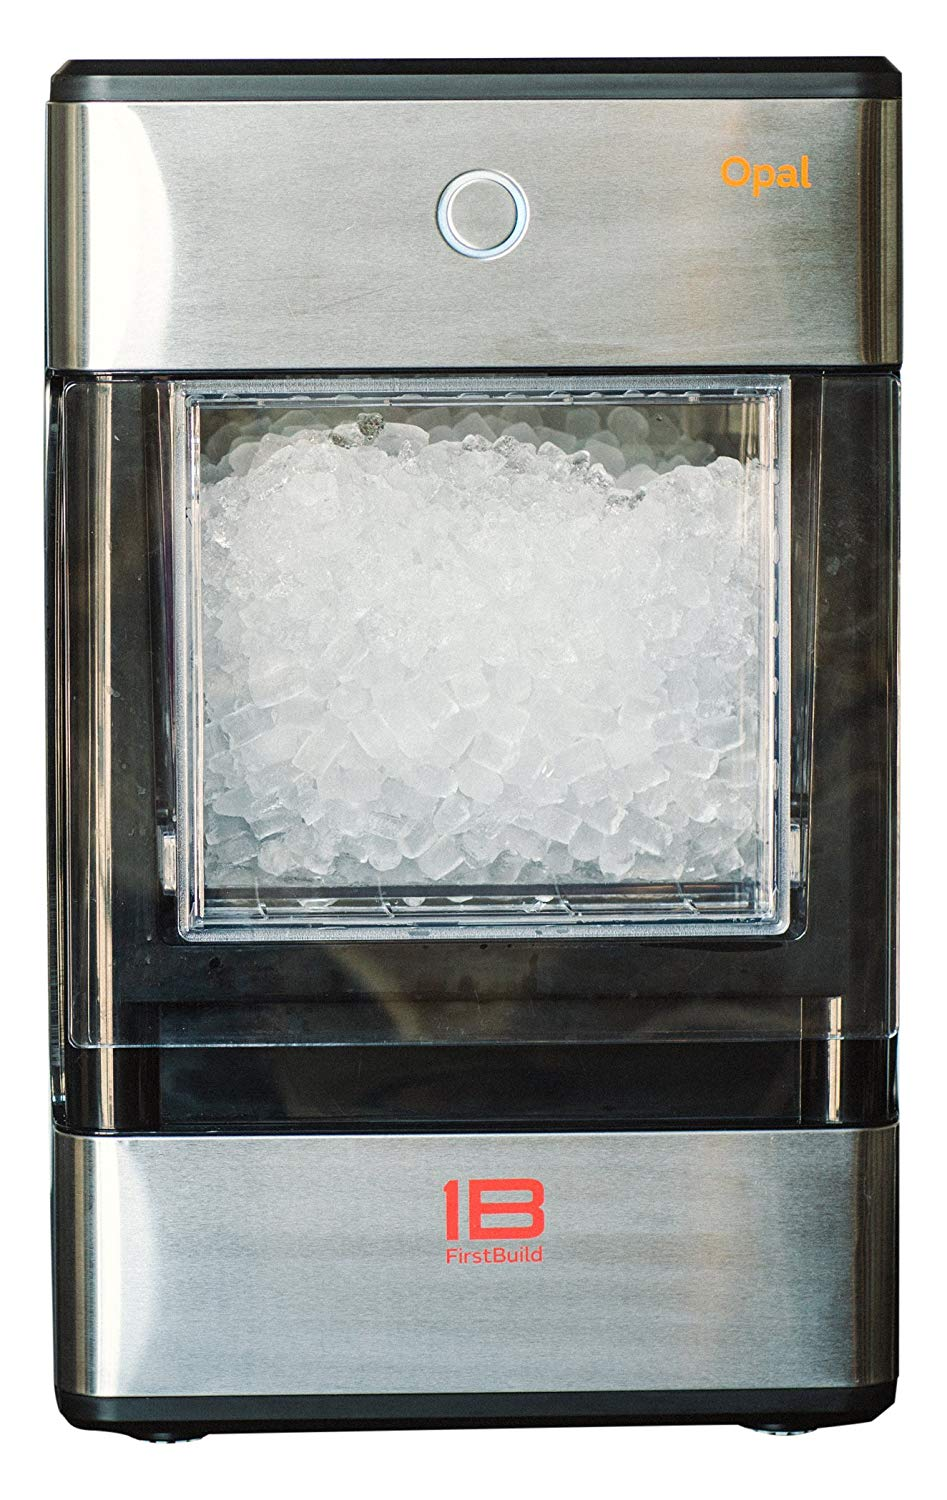 Countertop nugget ice machine from First Build